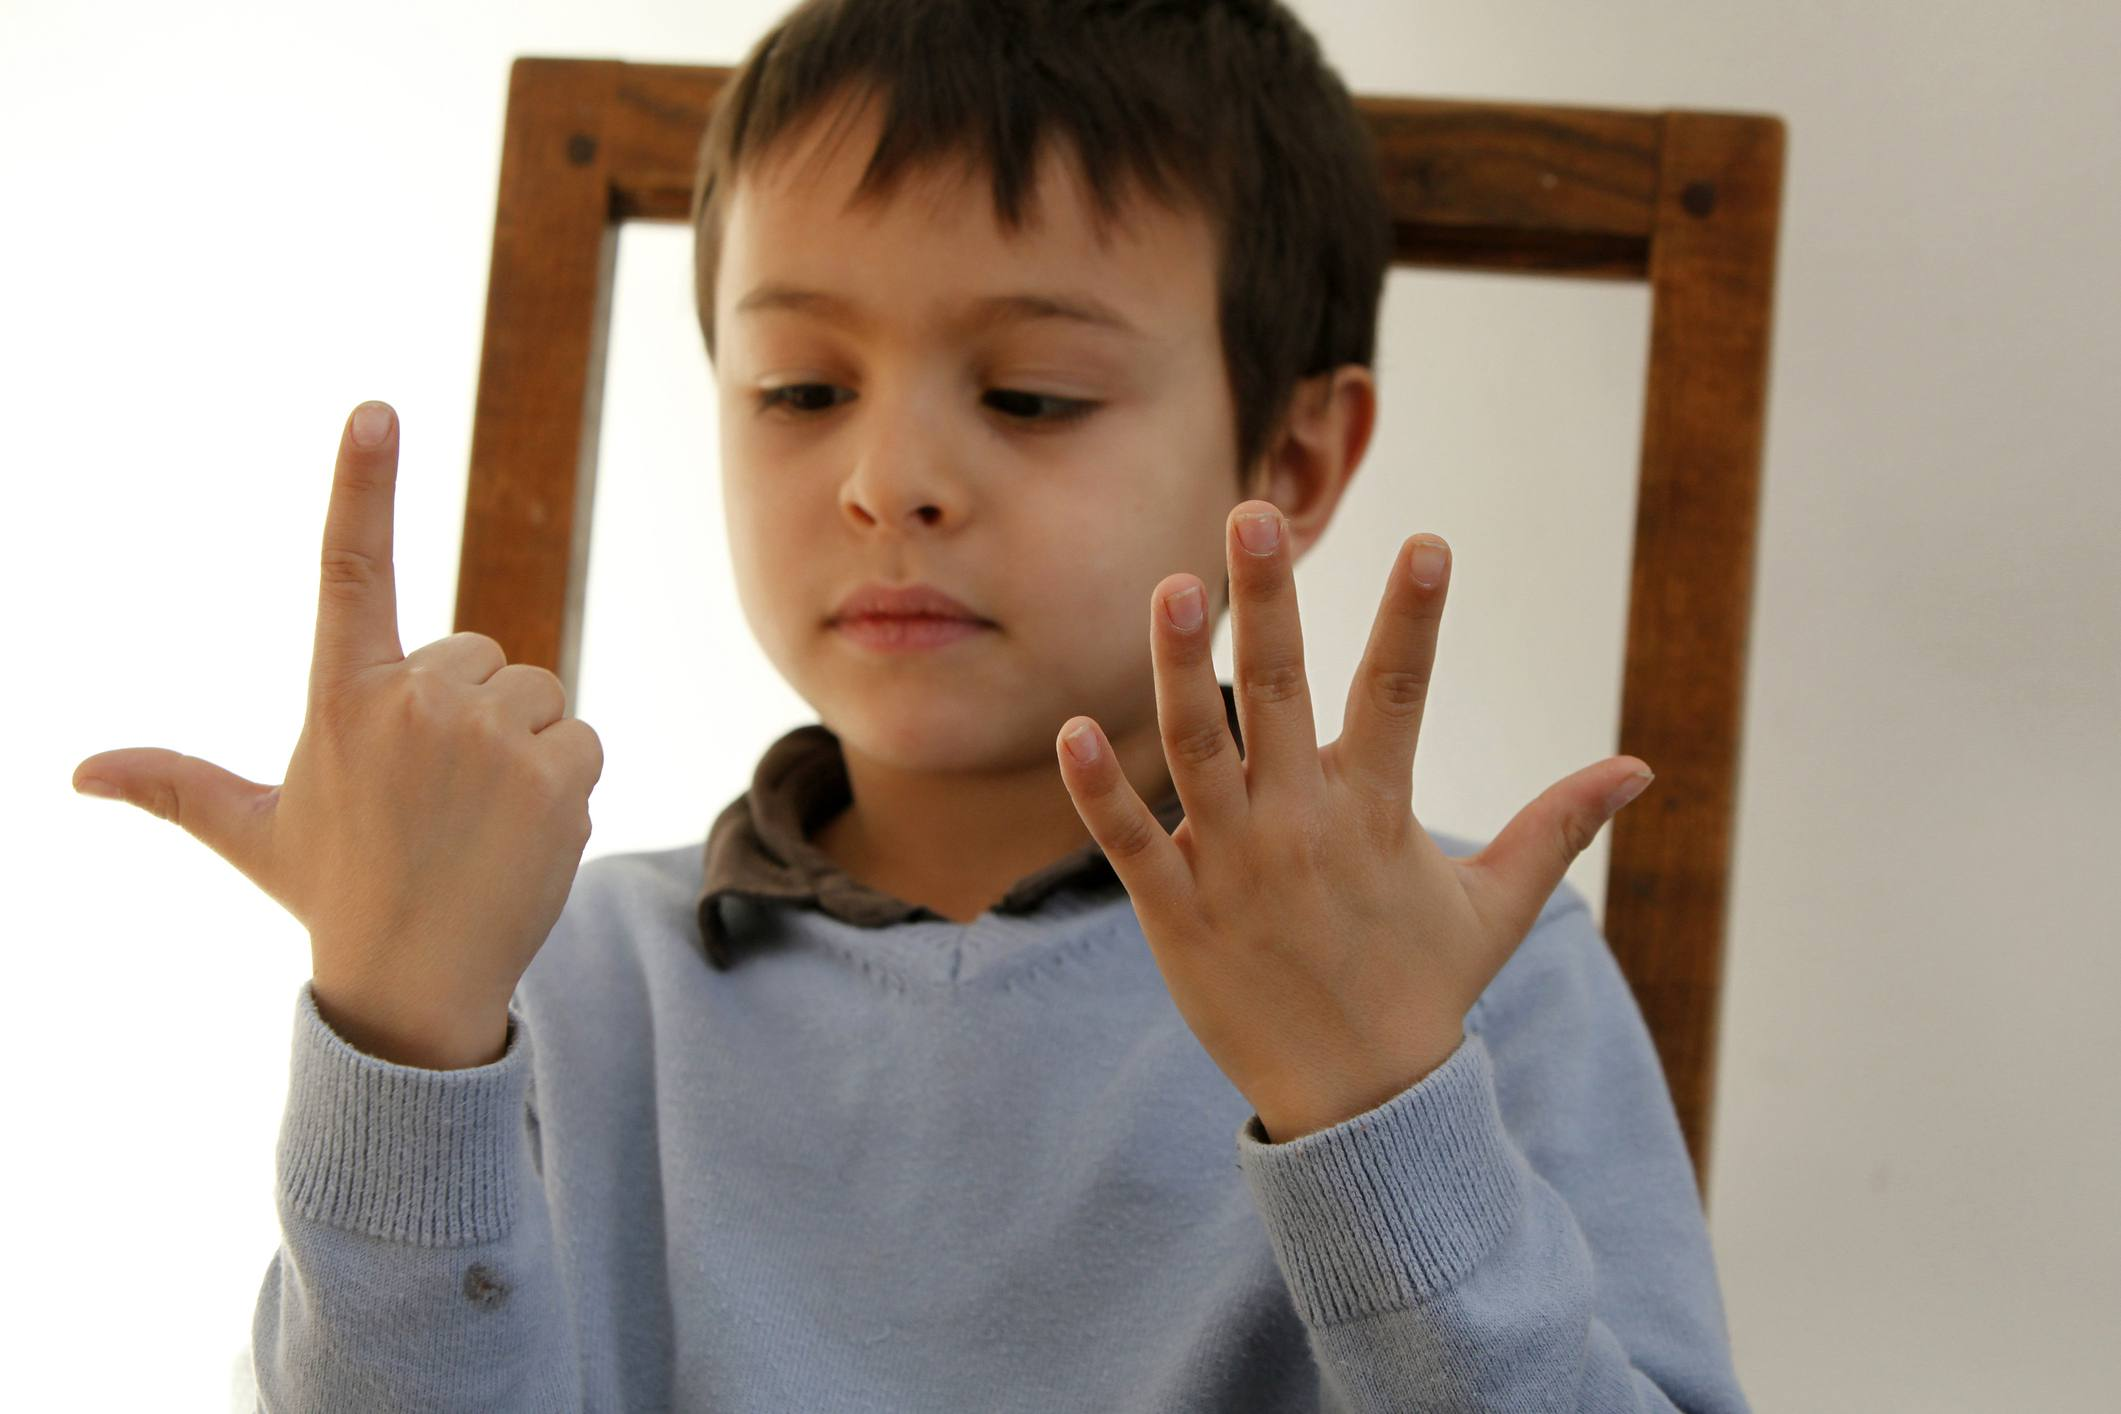 Child counting on fingers.